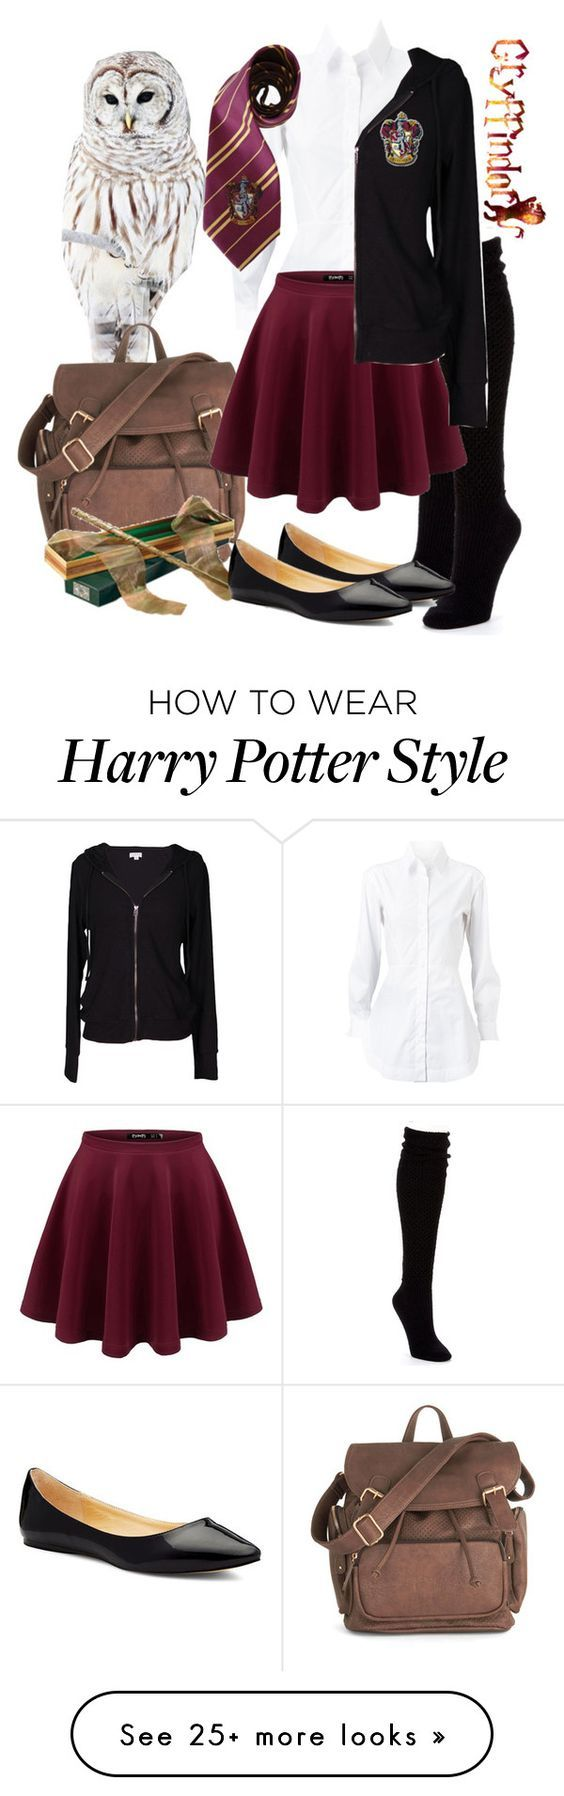 """Contest//MARGARITA'S WORLD DOMINATION TOUR ROUND 1"" by elisa-golden on Polyvore featuring Hue, Alaïa, Elope, Victoria's Secret, Velvet by Graham & Spencer, harrypotter, hogwarts, Gryffindor and mwdtone"